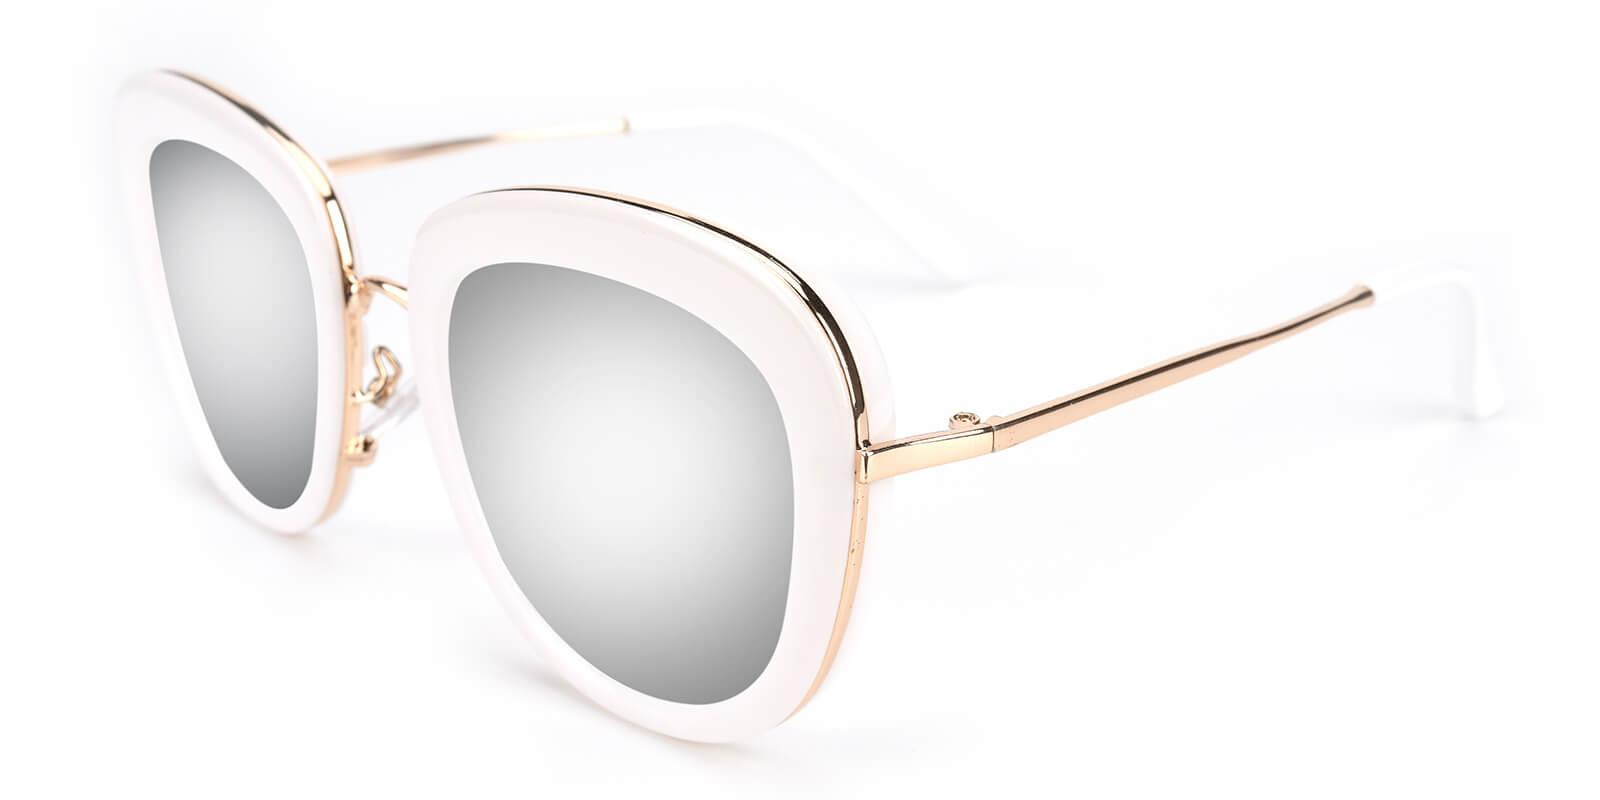 Eleanor-White-Cat-Acetate-Sunglasses-additional1